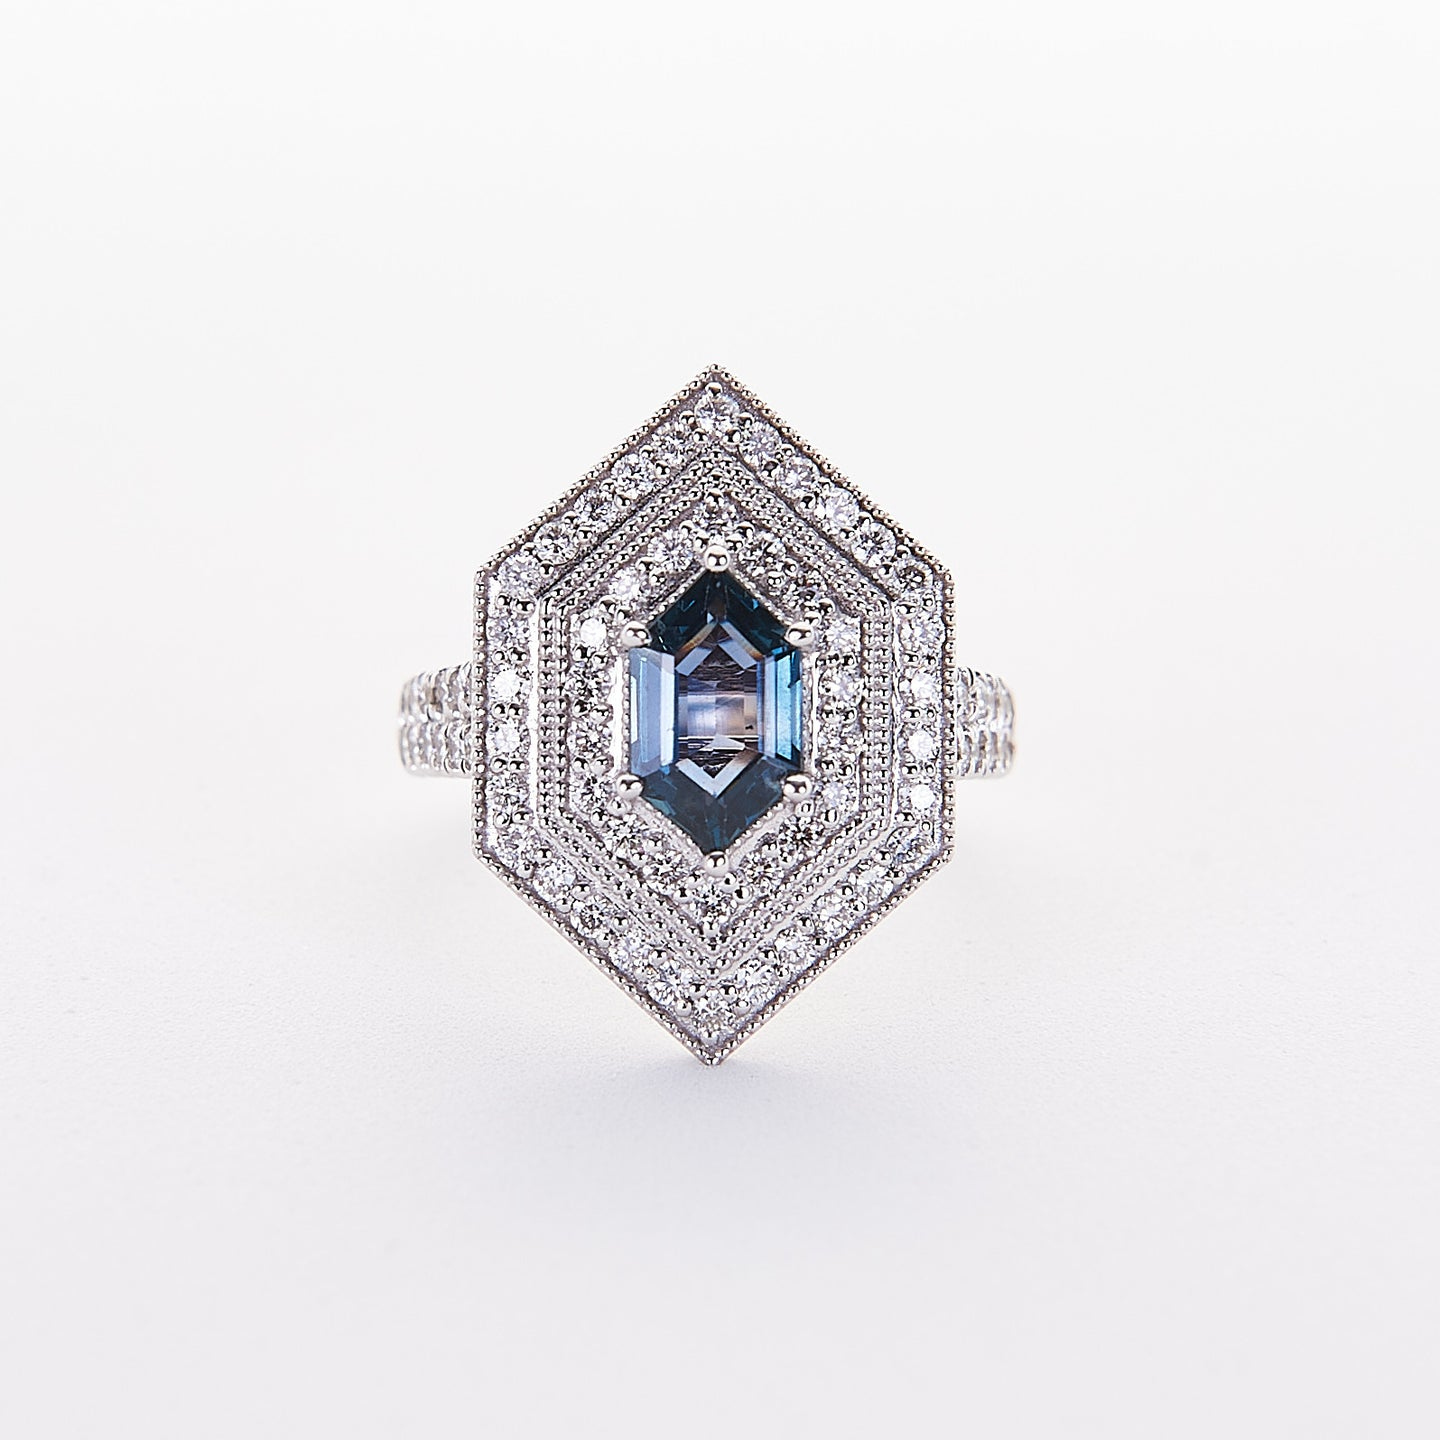 The Sky - 18K White Gold and Alexandrite Ring